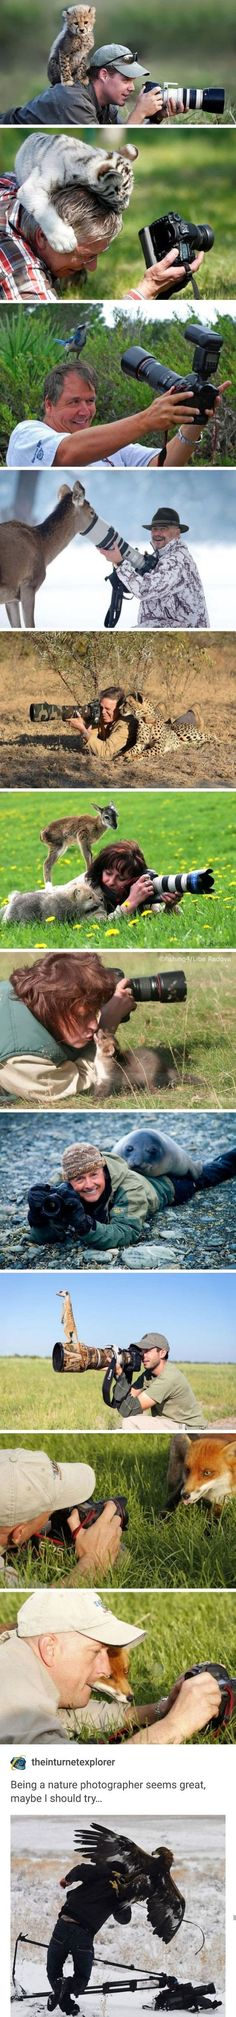 Online Photography Jobs - This is why I don't open iFunny in public Photography Jobs Online Animal Jokes, Funny Animal Memes, Cute Funny Animals, Funny Animal Pictures, Cute Baby Animals, Funny Cute, Animals And Pets, Funny Memes, Hilarious